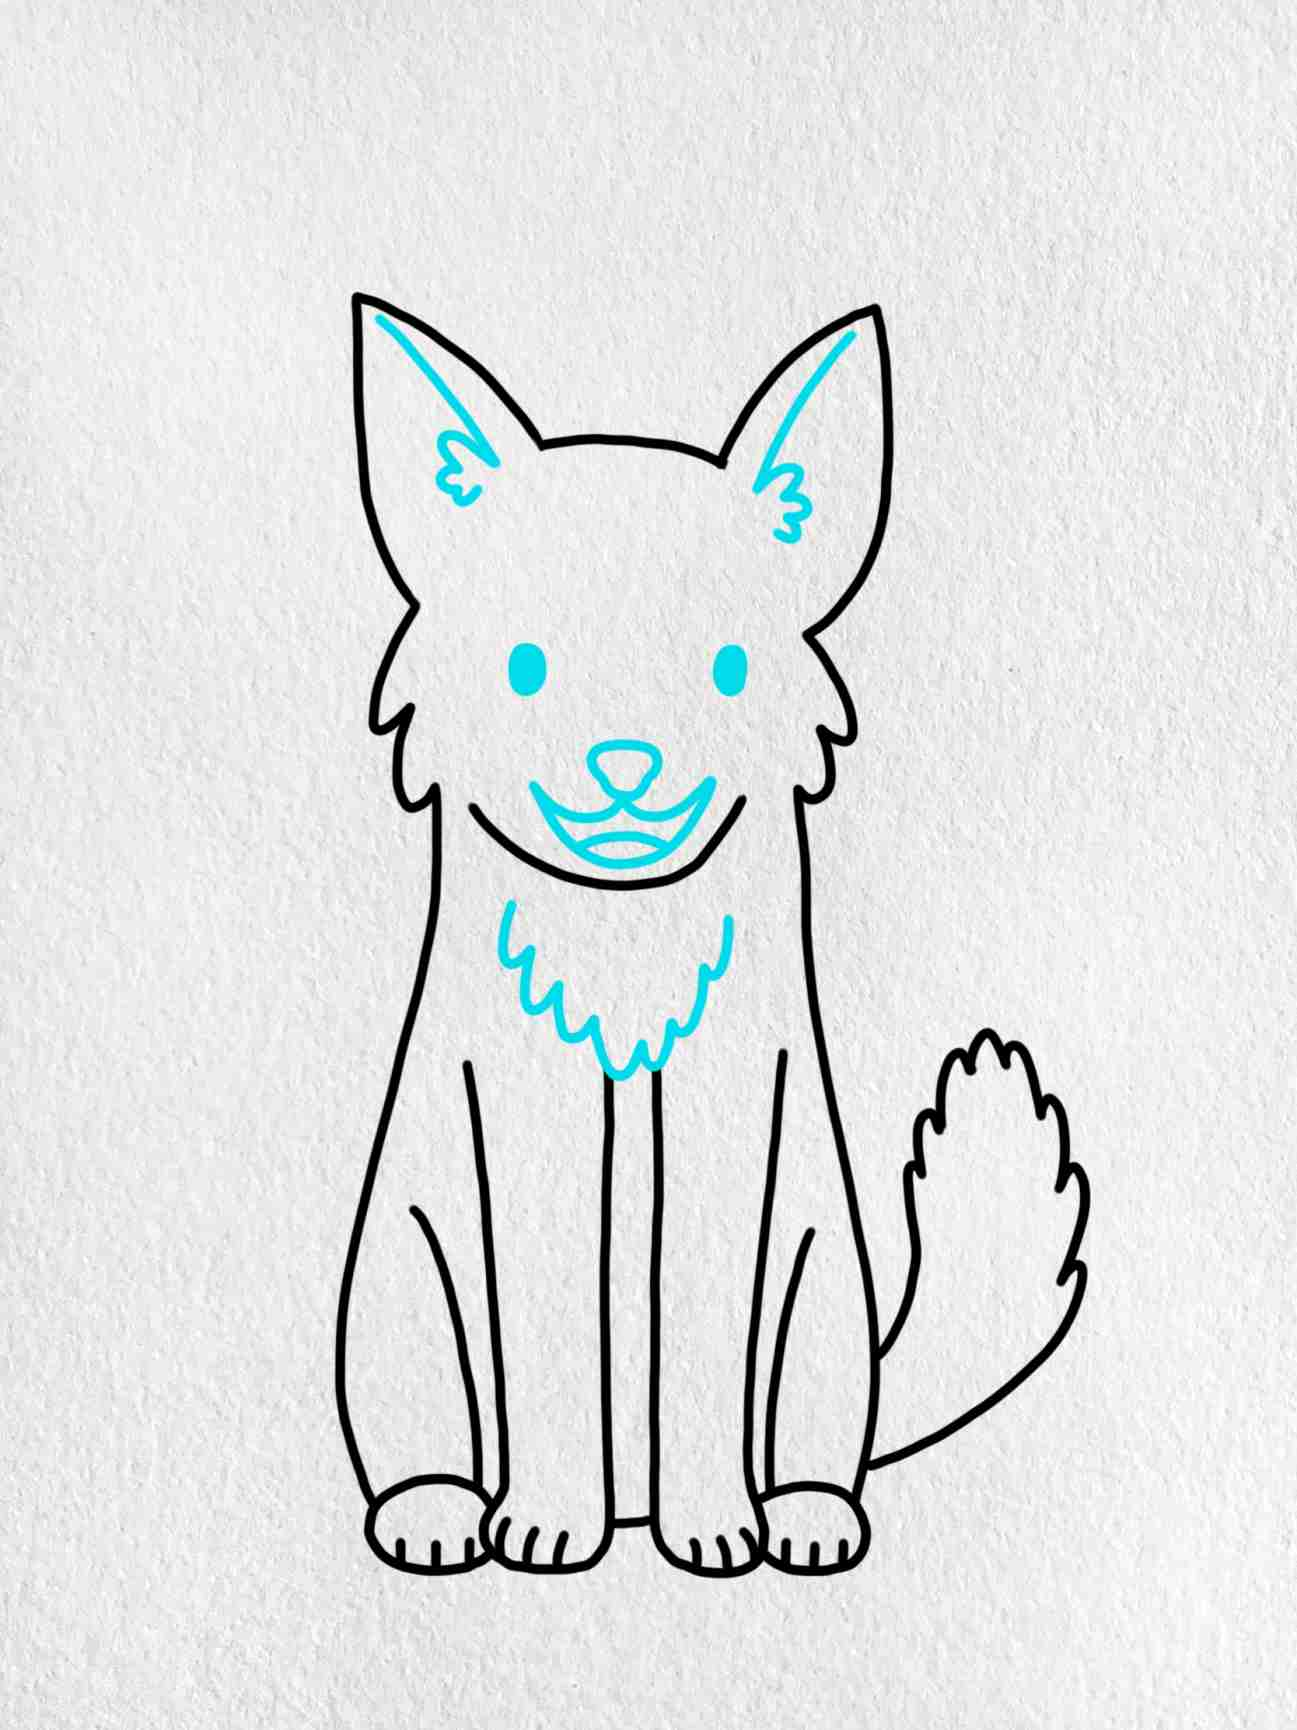 Easy Dog To Draw: Step 5